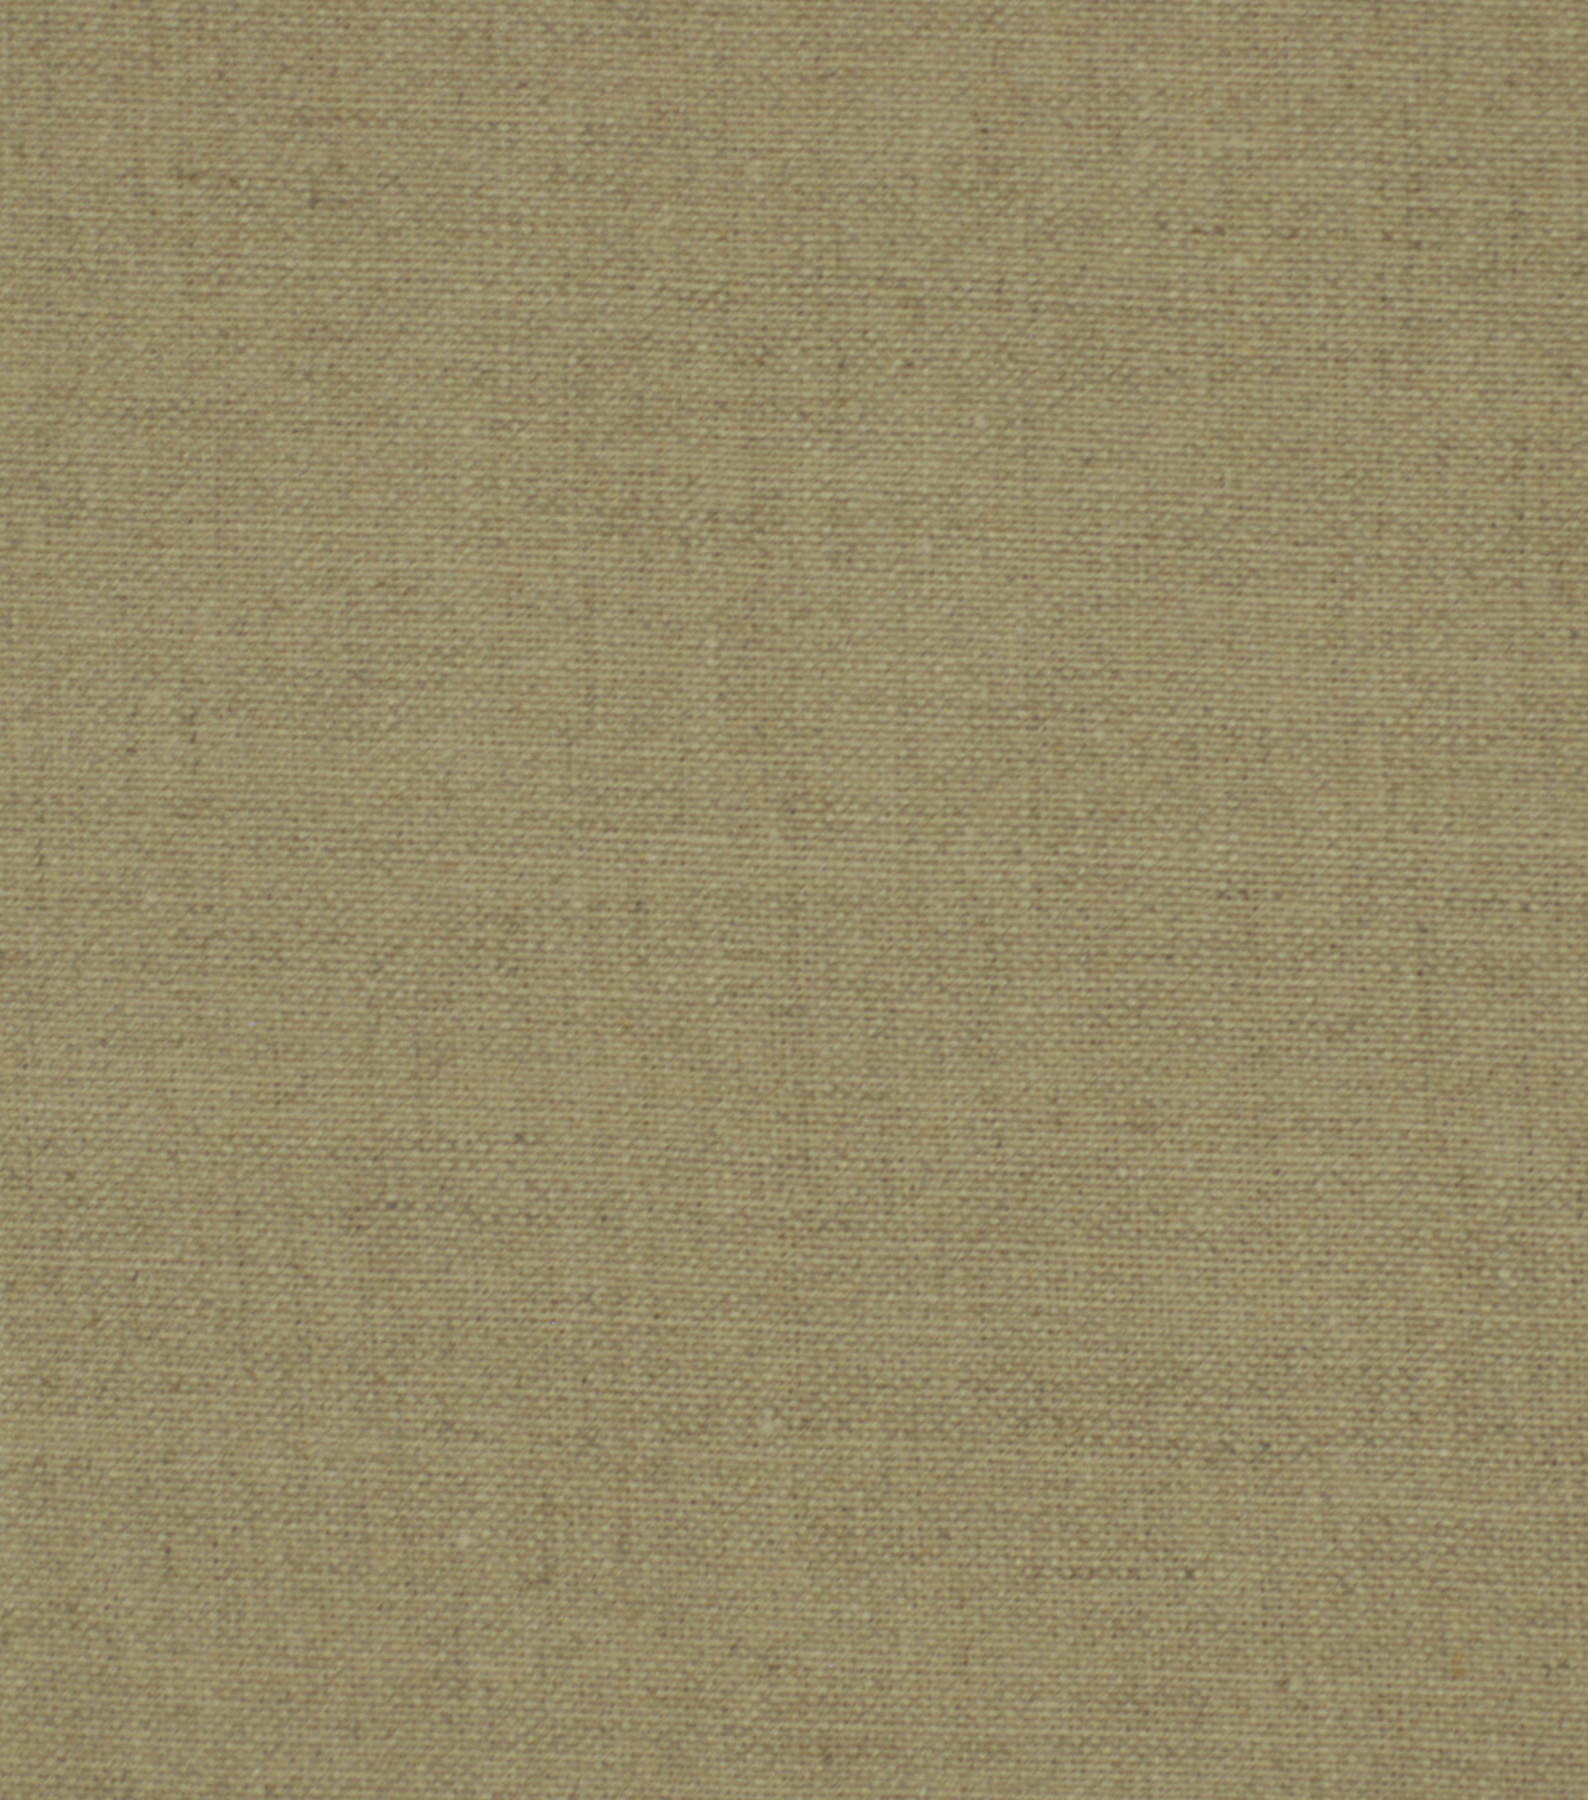 Robert Allen @ Home Multi-Purpose Decor Fabric Fabric 54\u0022-Kilrush Natural